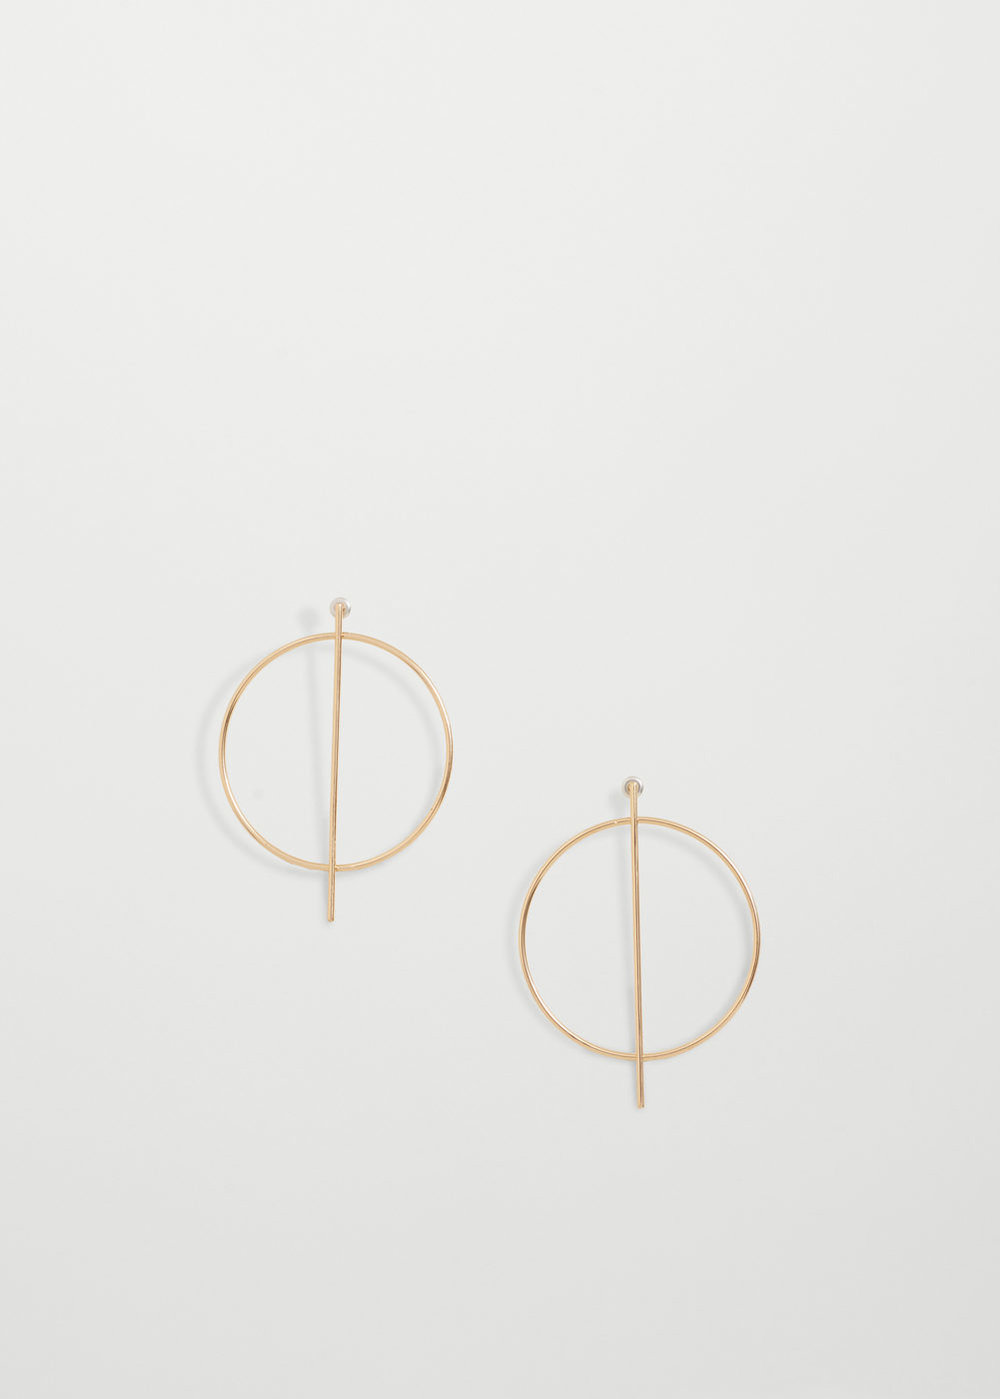 I've been loving hoop earrings again (and need to get more pairs!) but   these   are really perfect because they're an interesting design but not over the top.